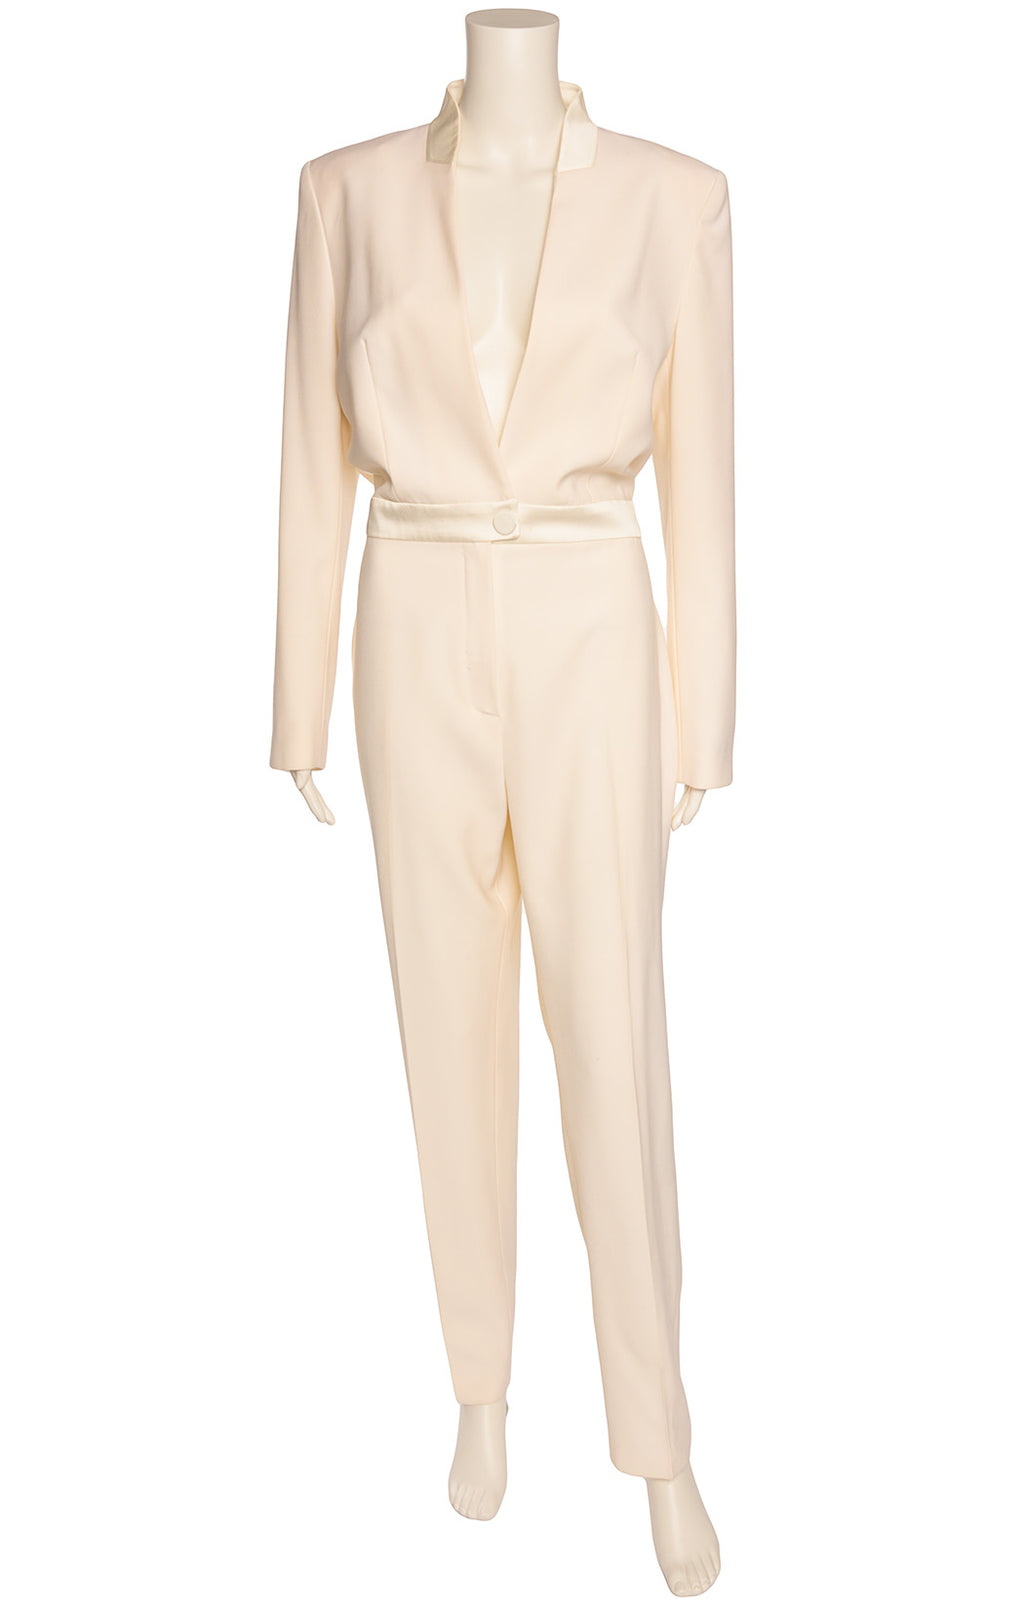 Front view of PALLAS Jumpsuit  Size: FR 44 (comparable to US 10-12)